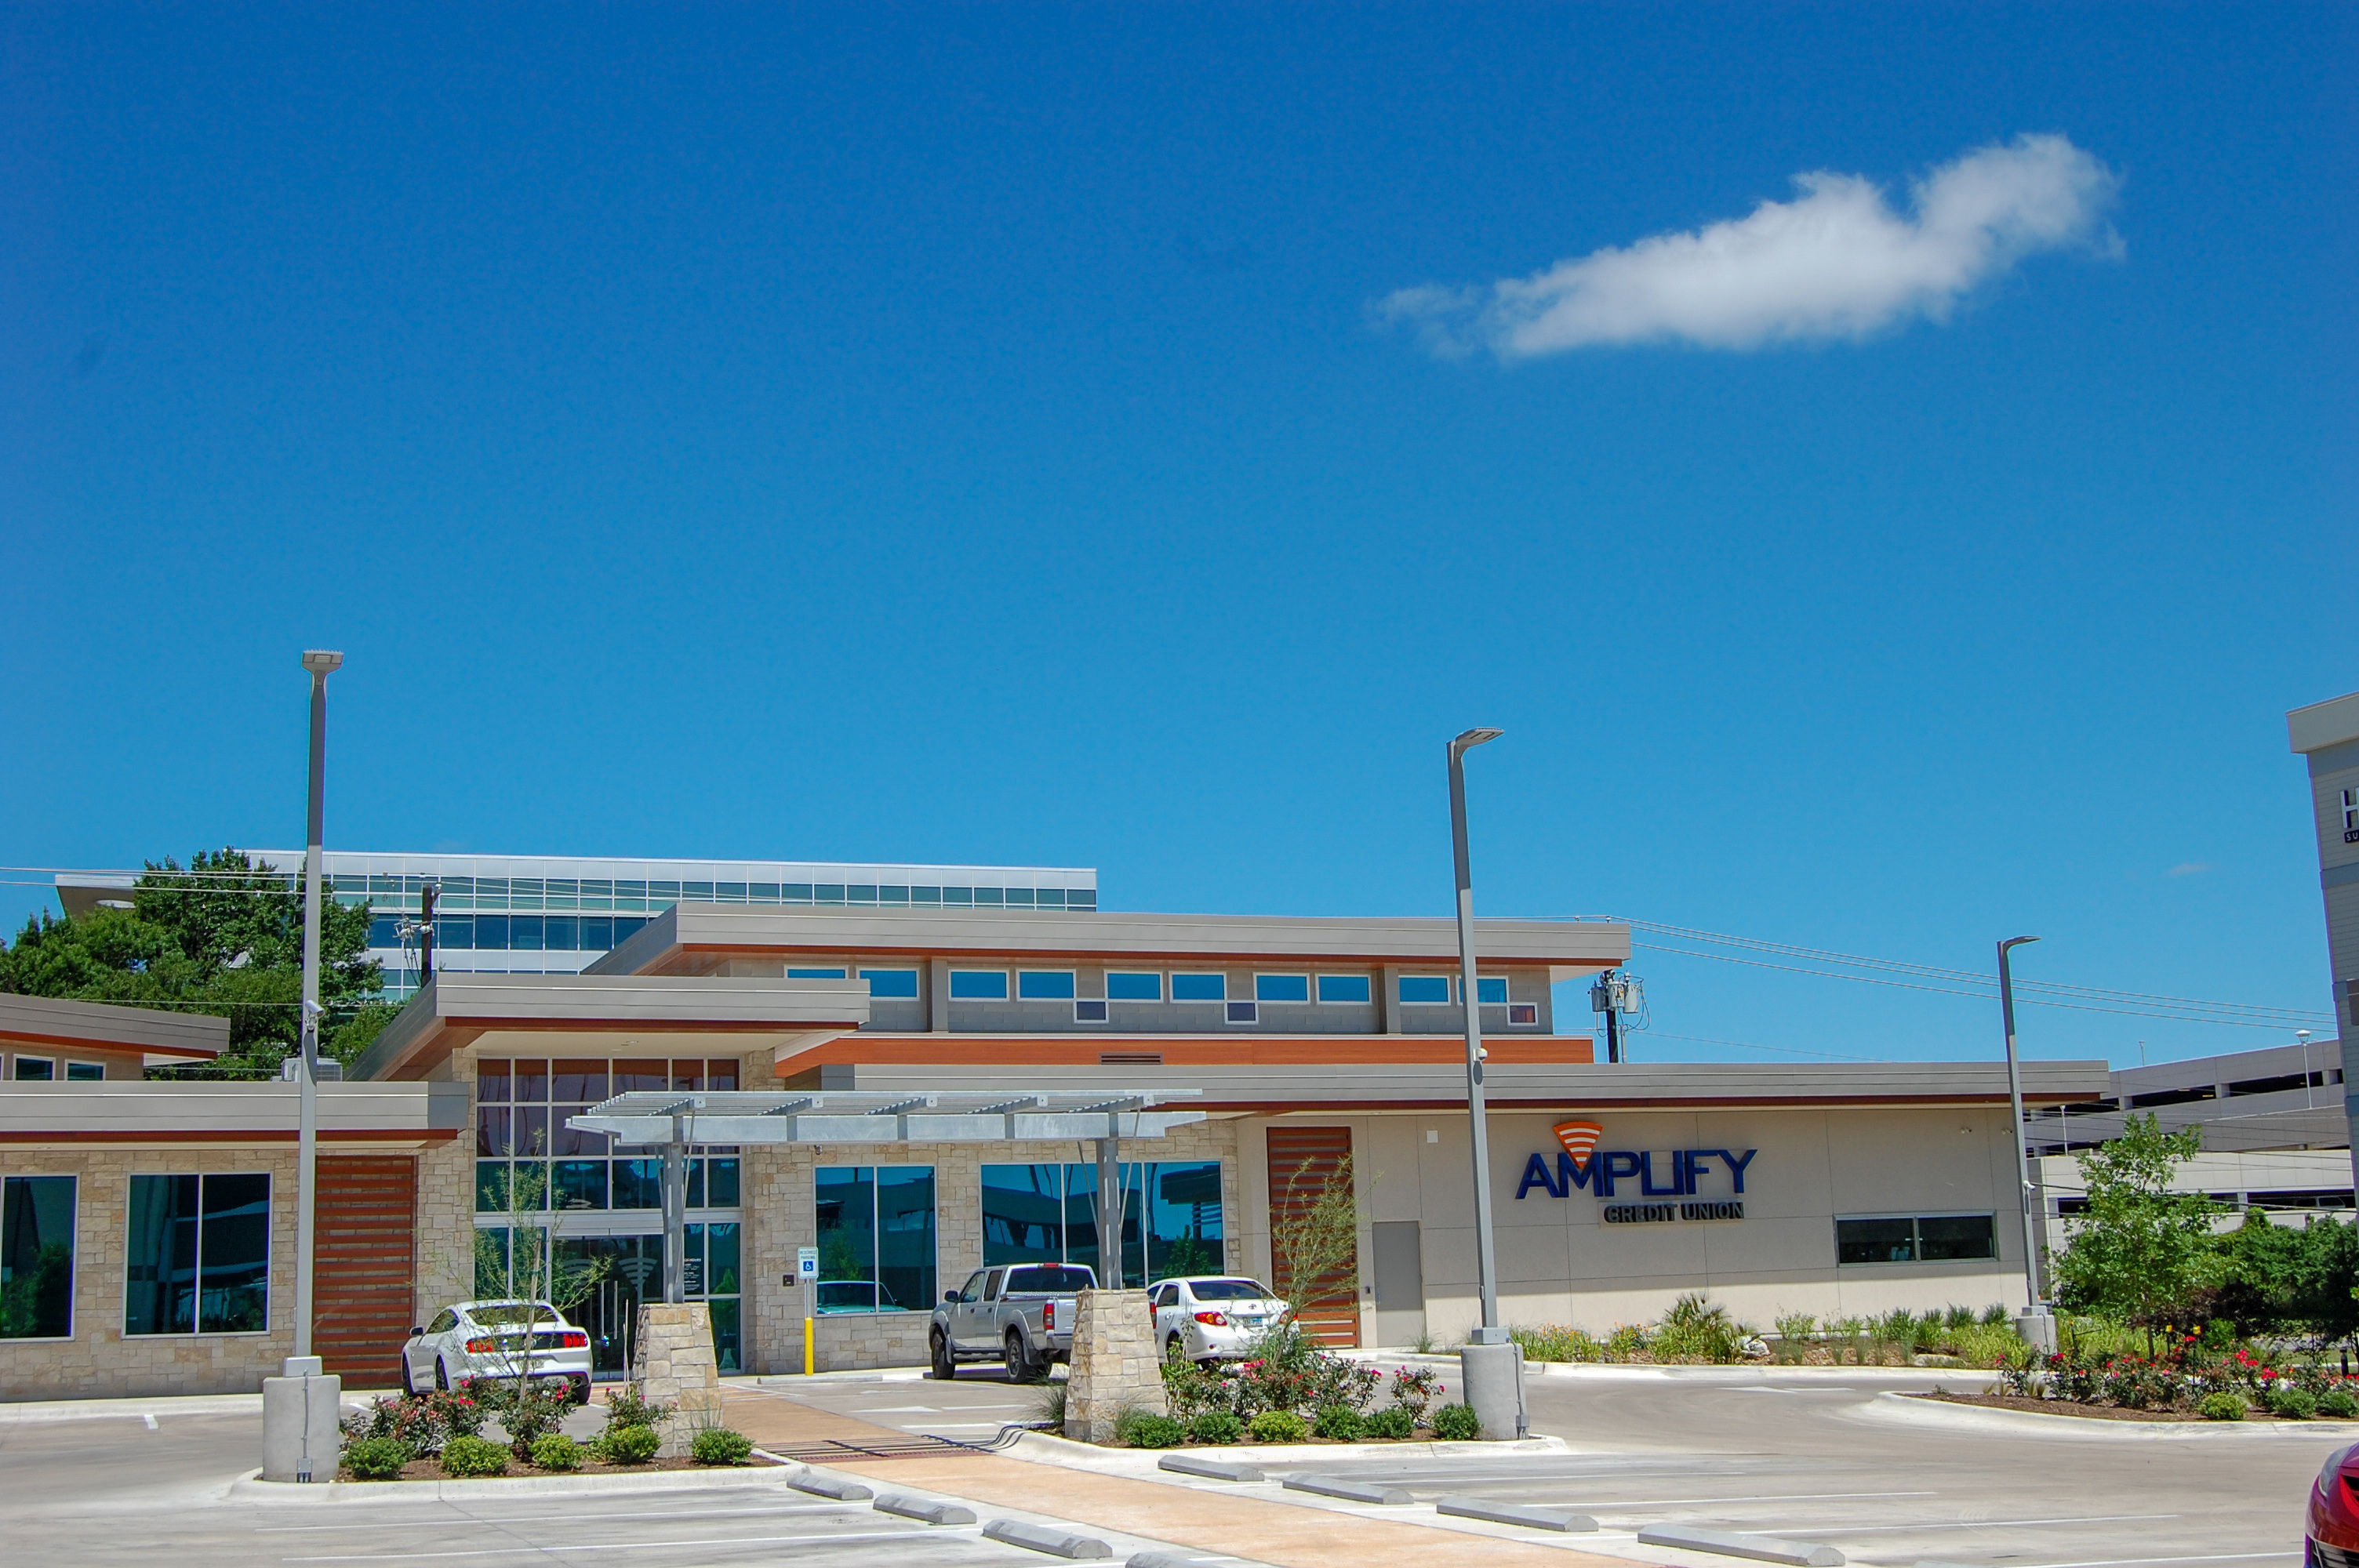 Amplify Credit Union, Esperanza Crossing – Austin, Texas